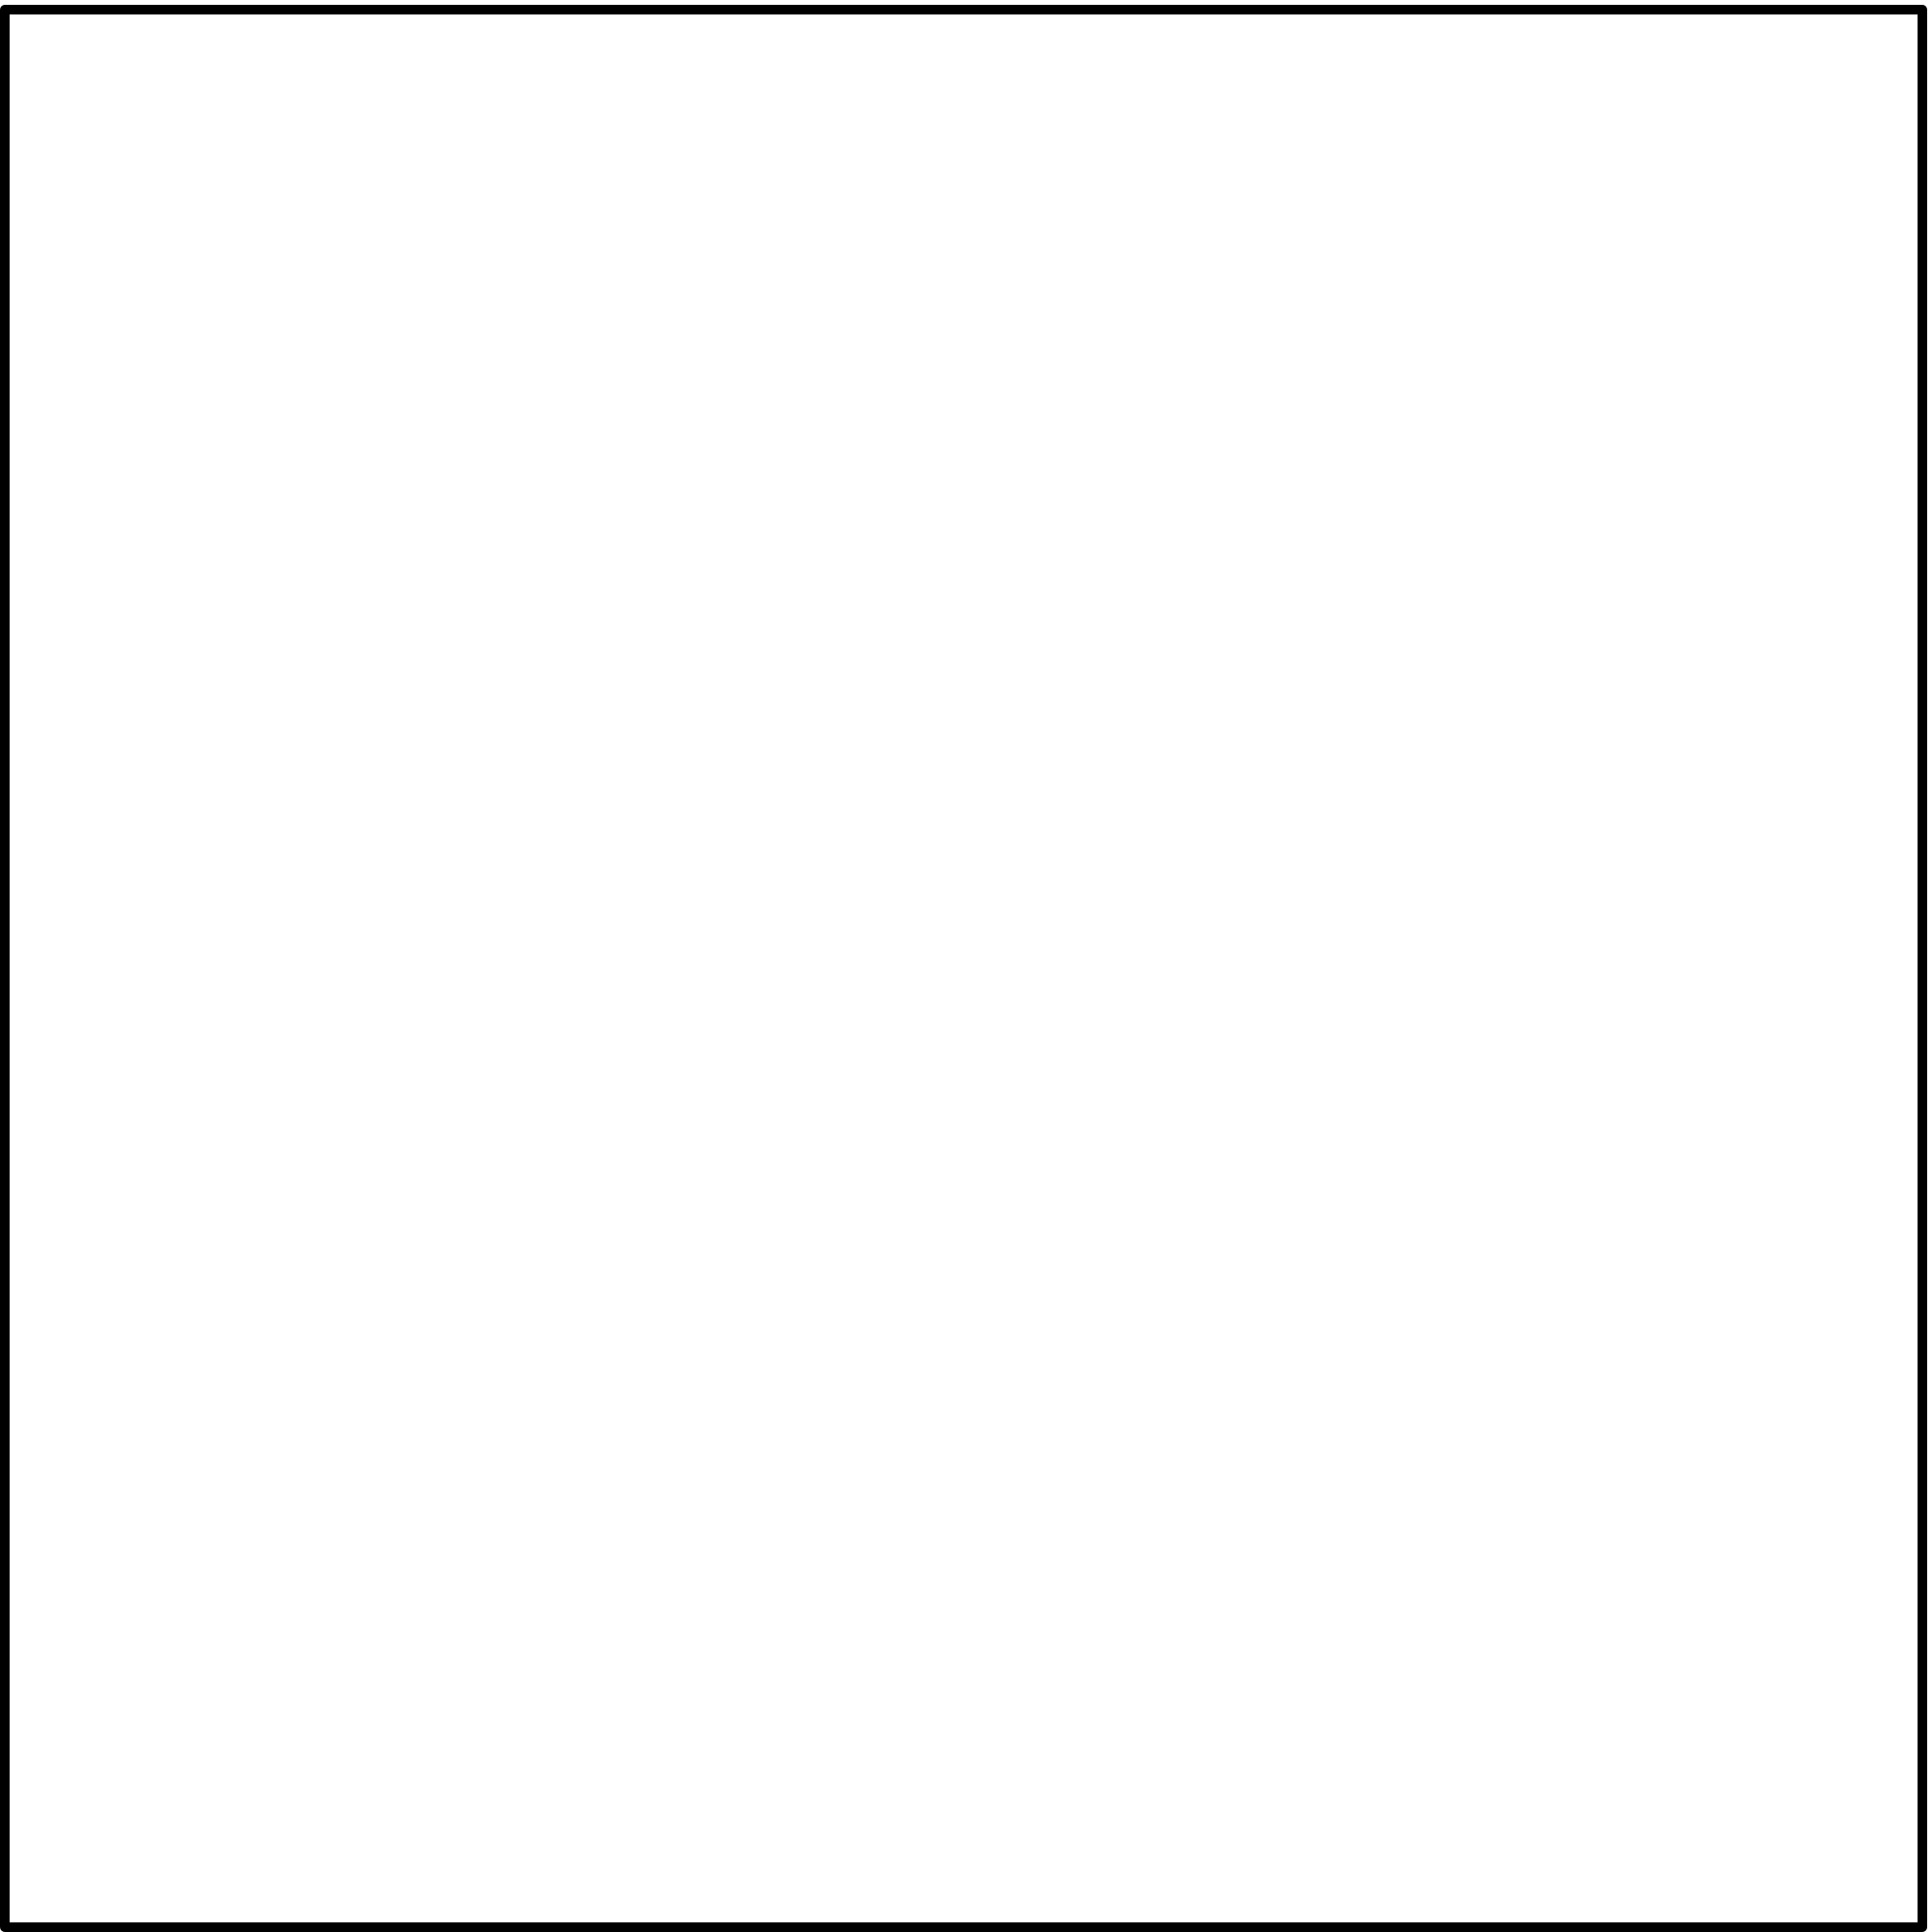 File blank svg wikimedia. Square border png